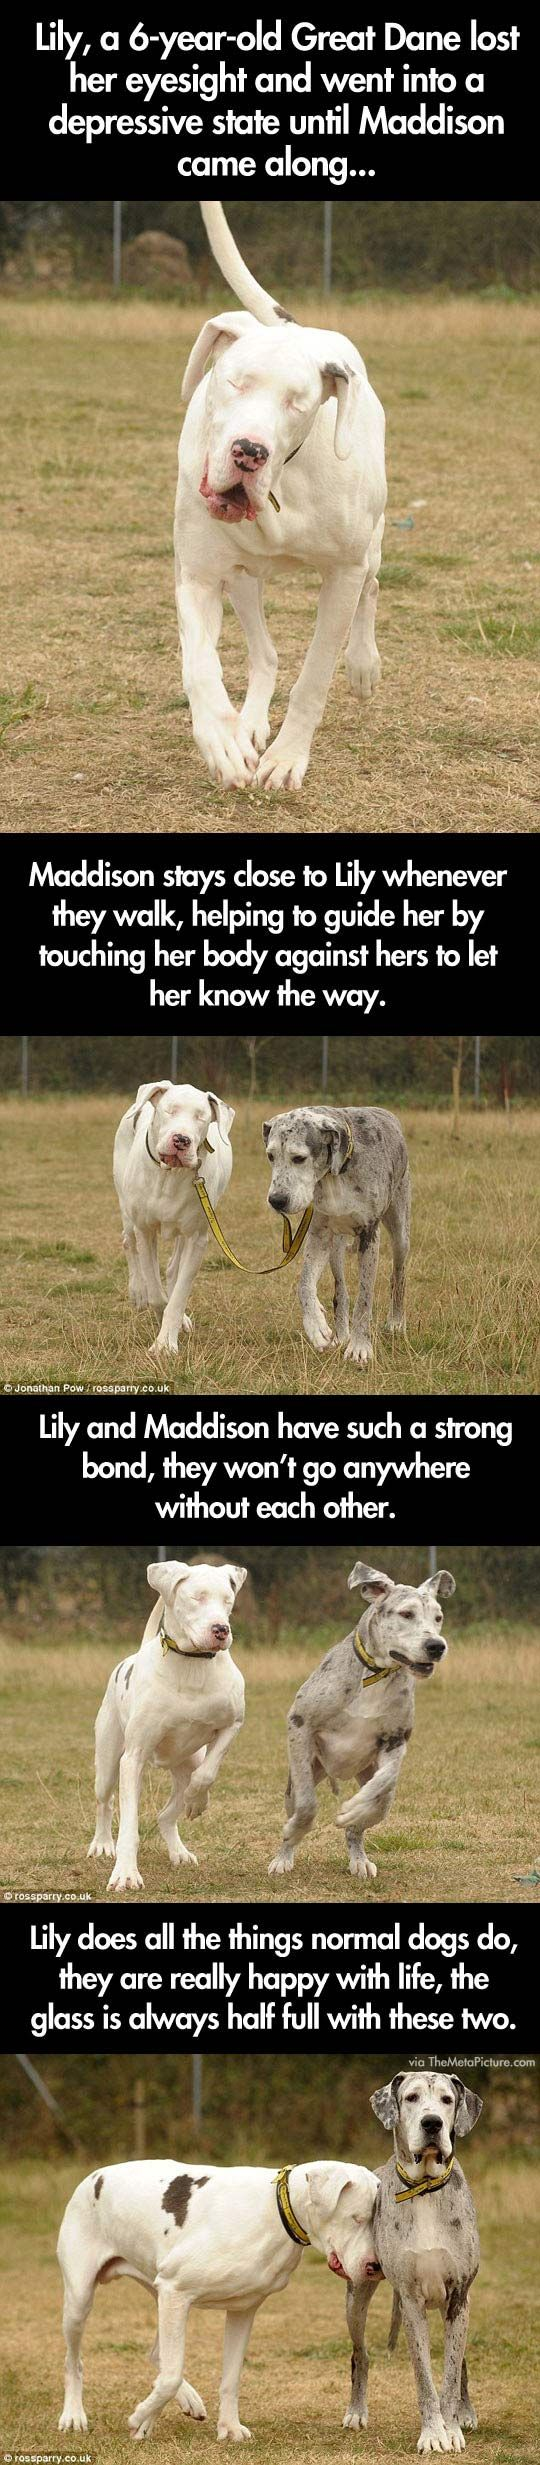 Blind Great Dane and her guide